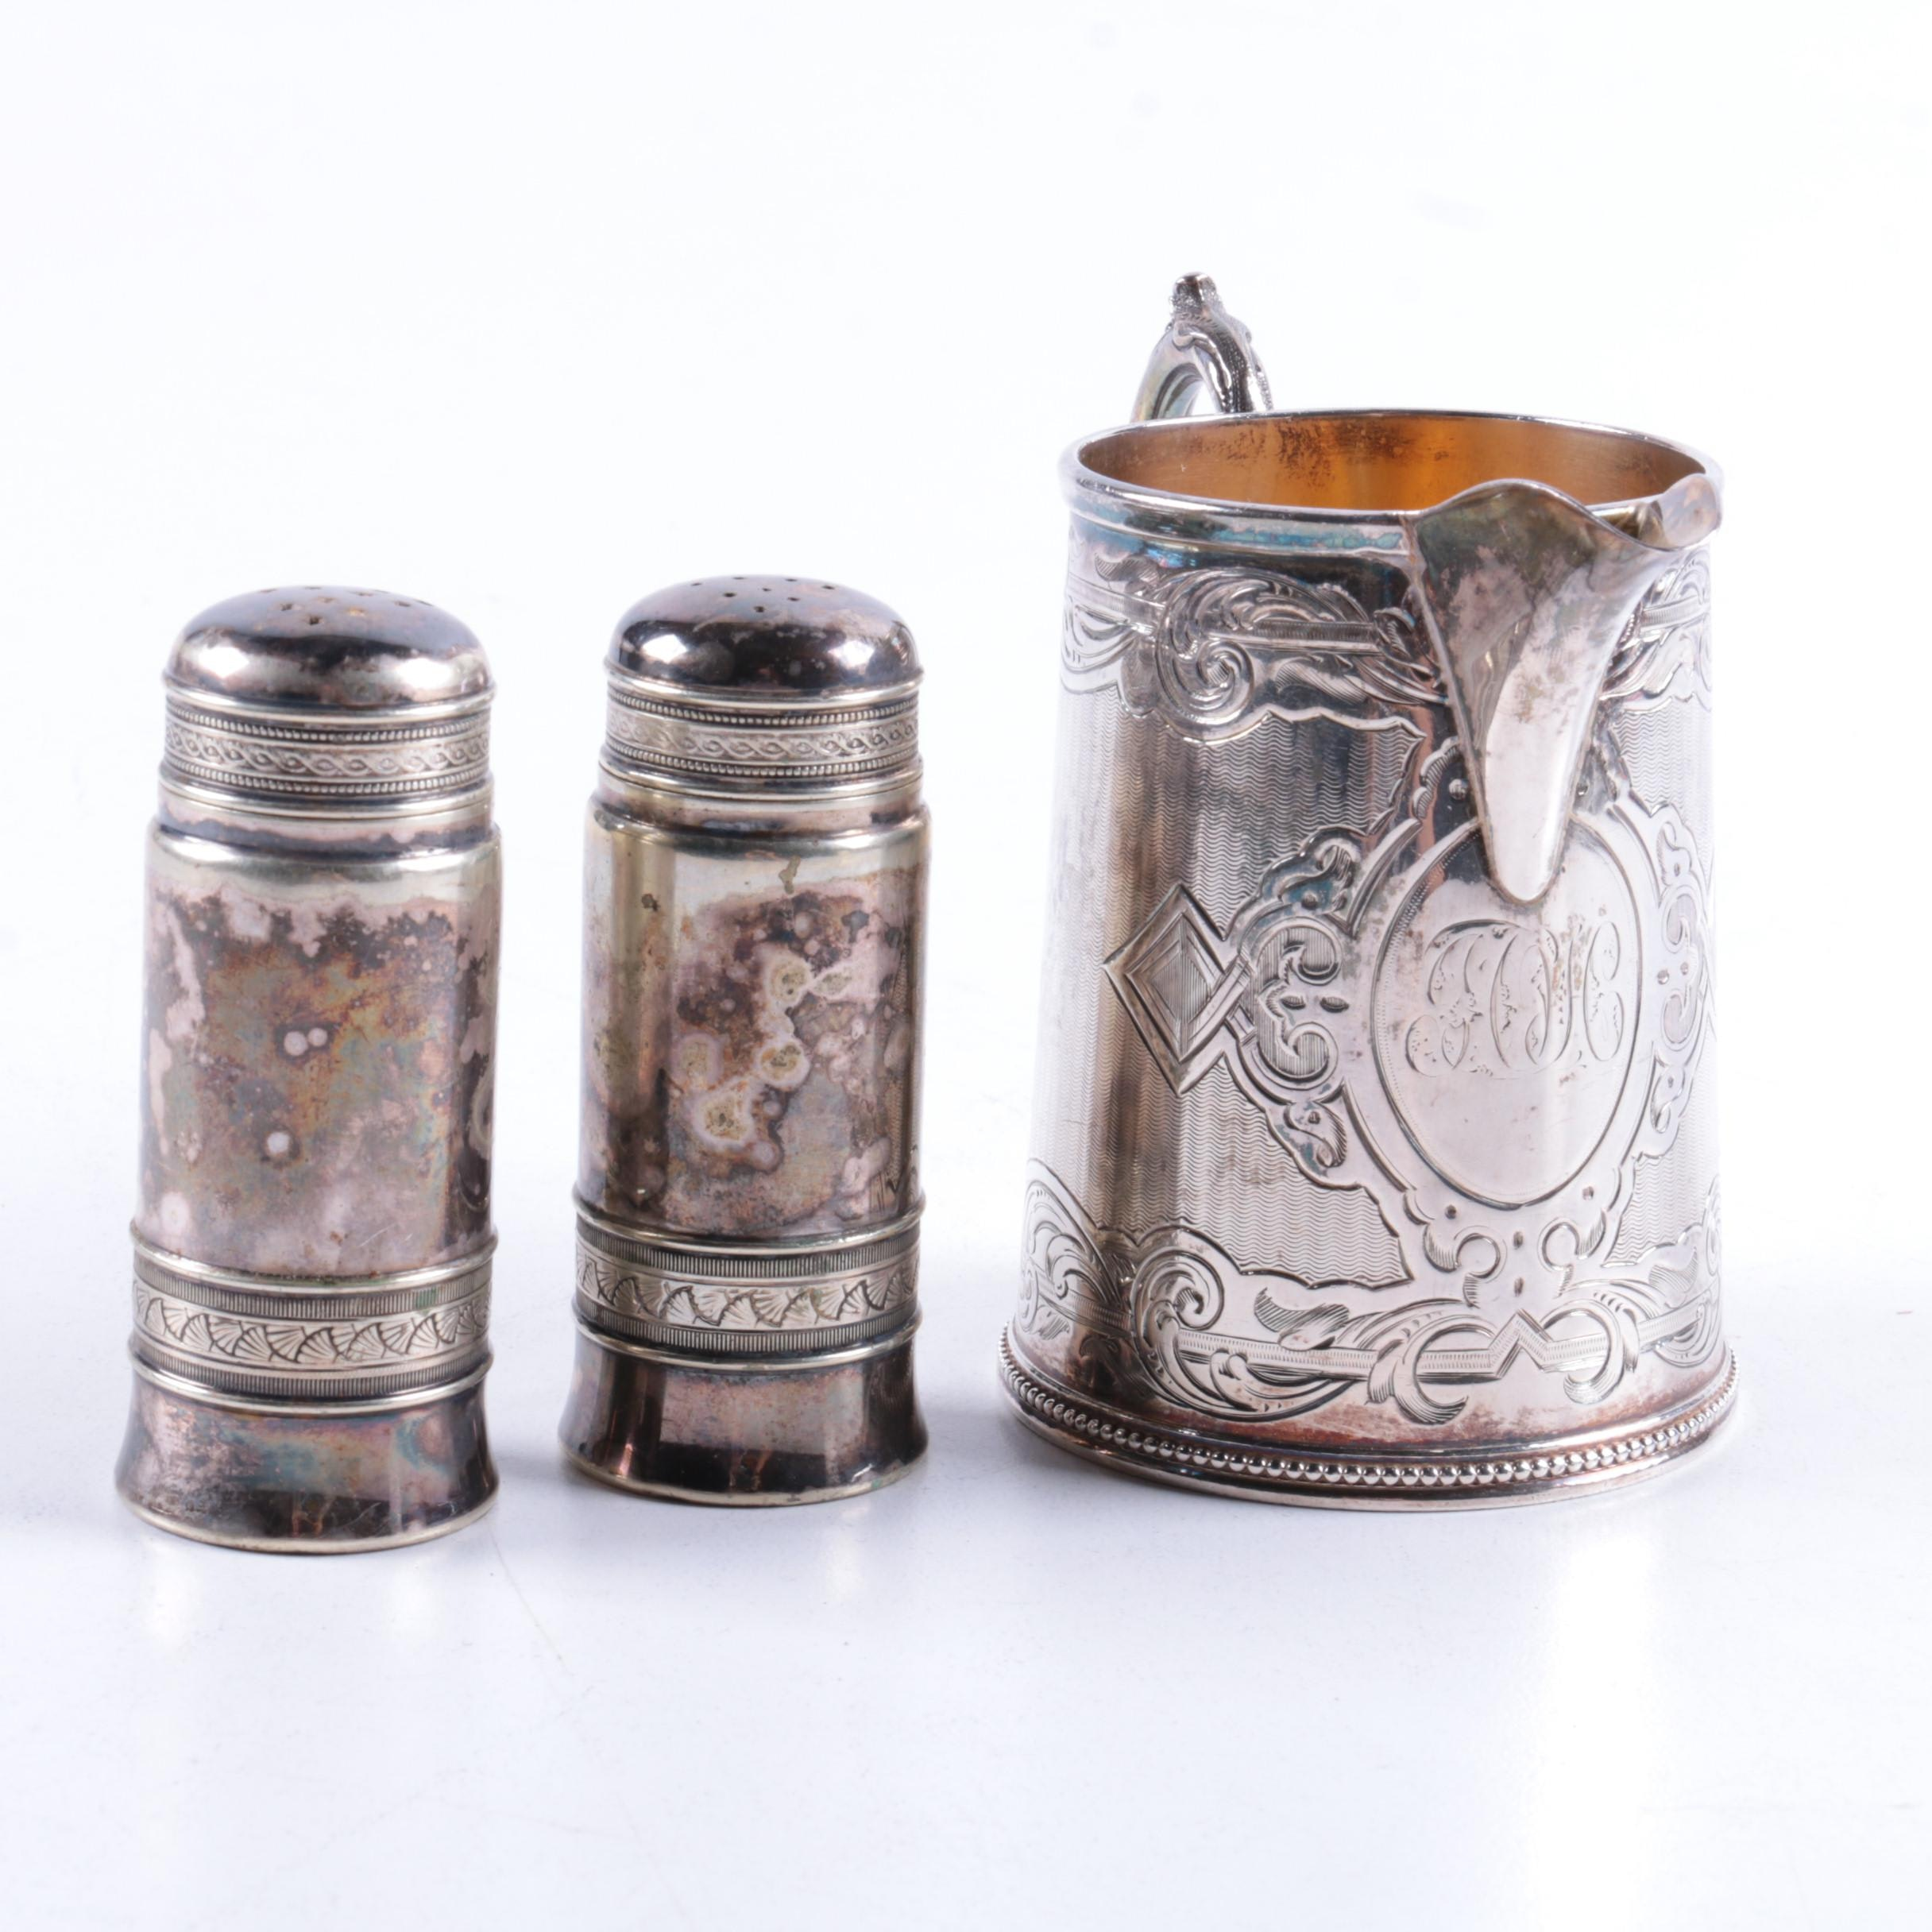 Gorham Silver Plate Salt and Pepper Set with Victorian Sterling Creamer